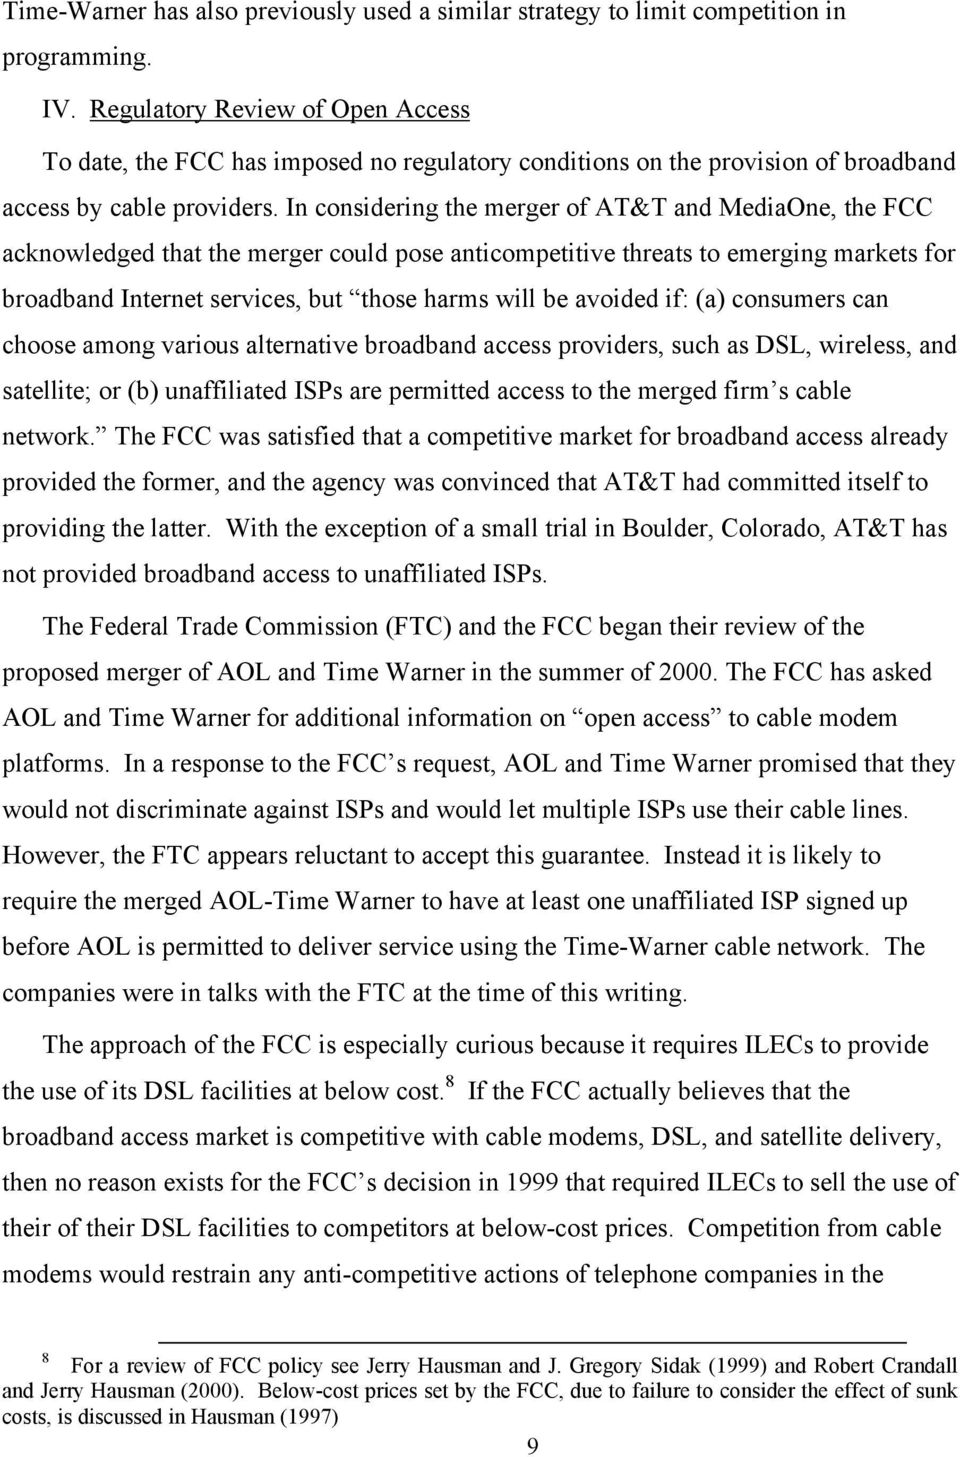 In considering the merger of AT&T and MediaOne, the FCC acknowledged that the merger could pose anticompetitive threats to emerging markets for broadband Internet services, but those harms will be